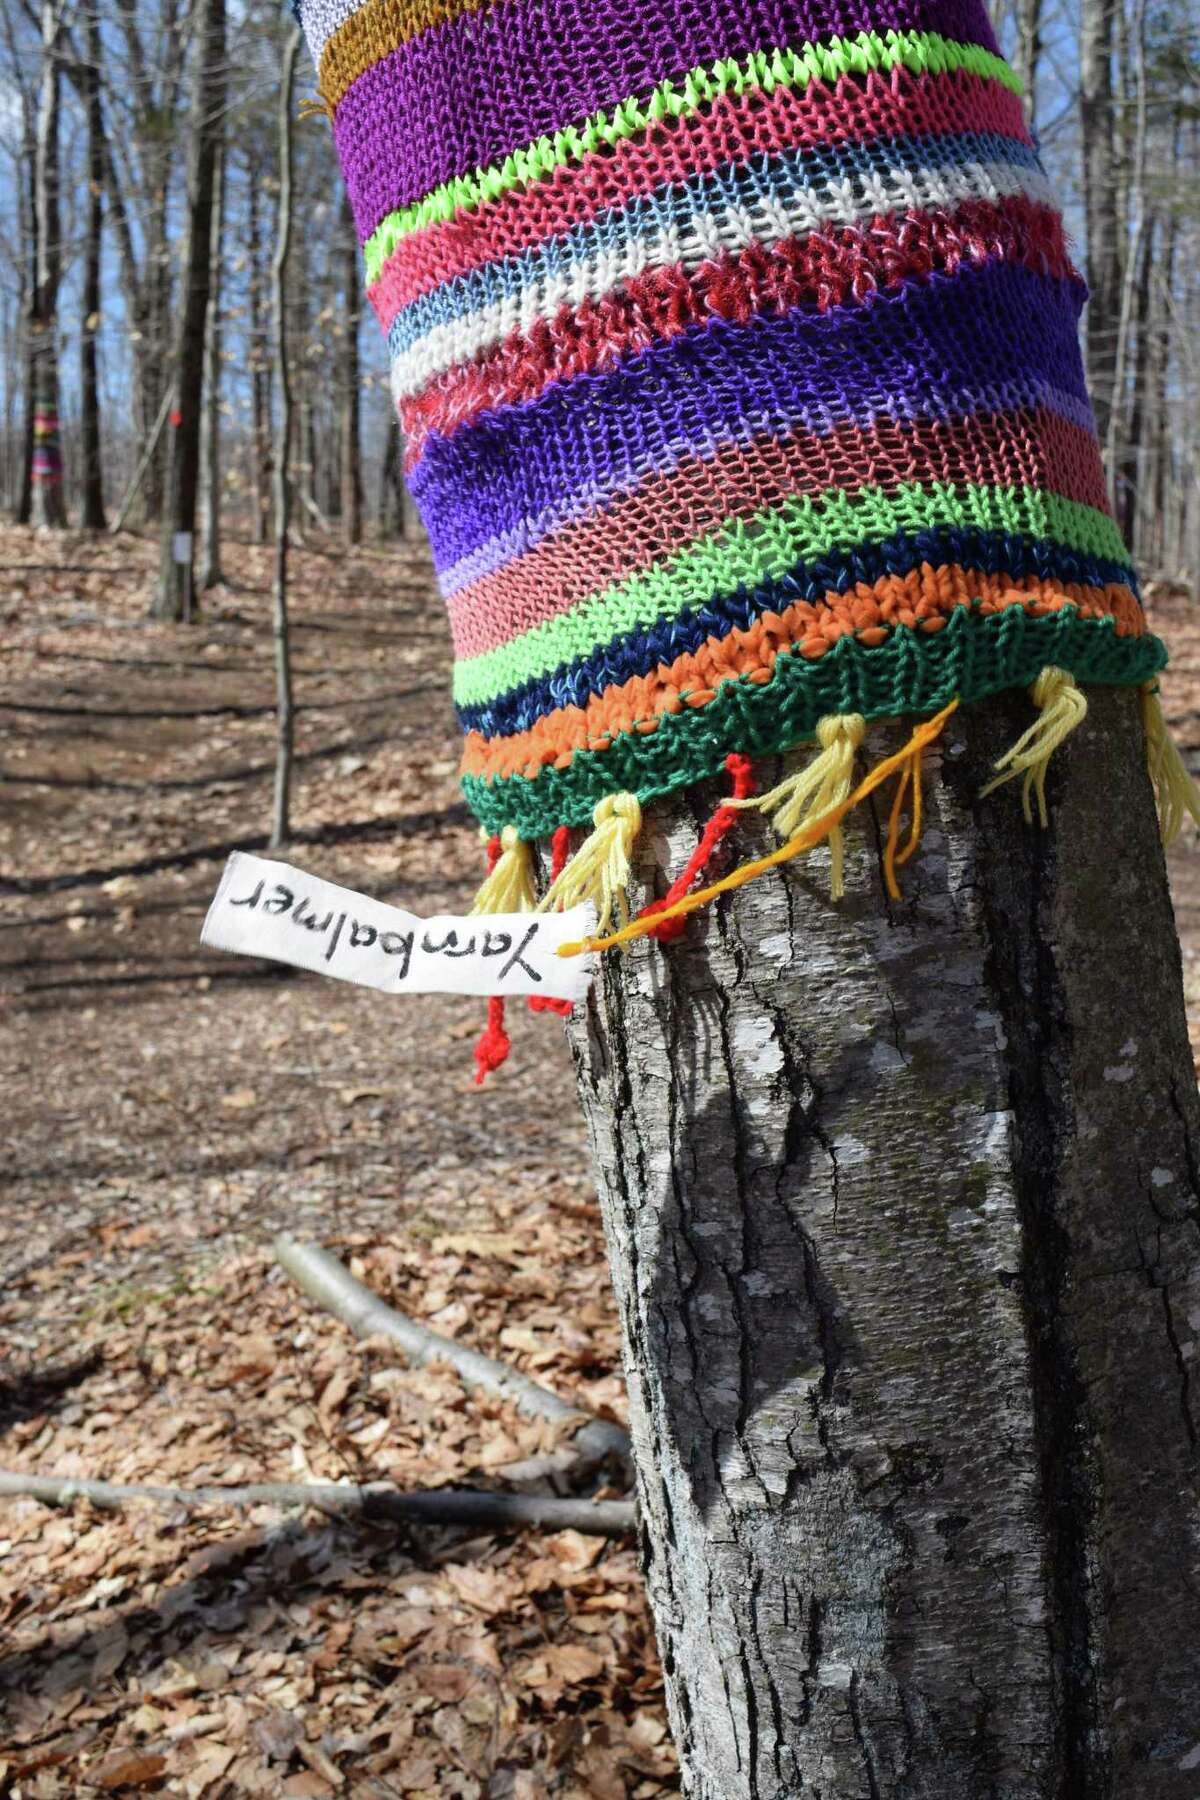 """Beginning in April, hikers can expect a bit more decoration on the trees at the Woodcock Nature Center in Wilton. An artist known as """"Yarnbalmer"""" has installed crocheted yarn art along a familiar section of trail at the center, at 54 Deer Run Road in Wilton."""